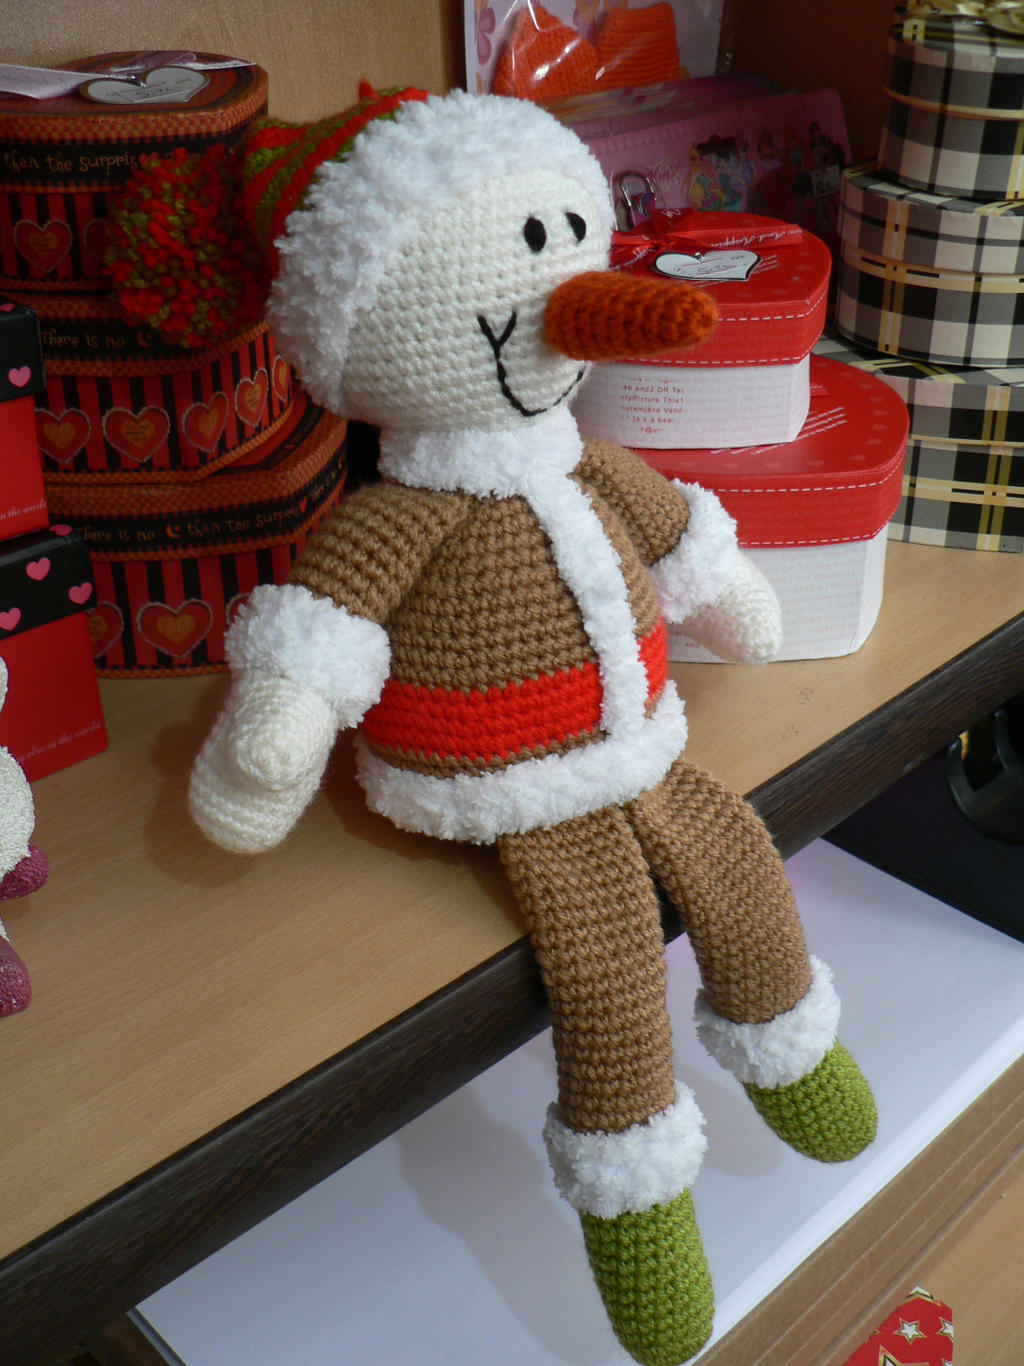 amigurumi christmas ornament by GirlOfTheOcean on deviantART